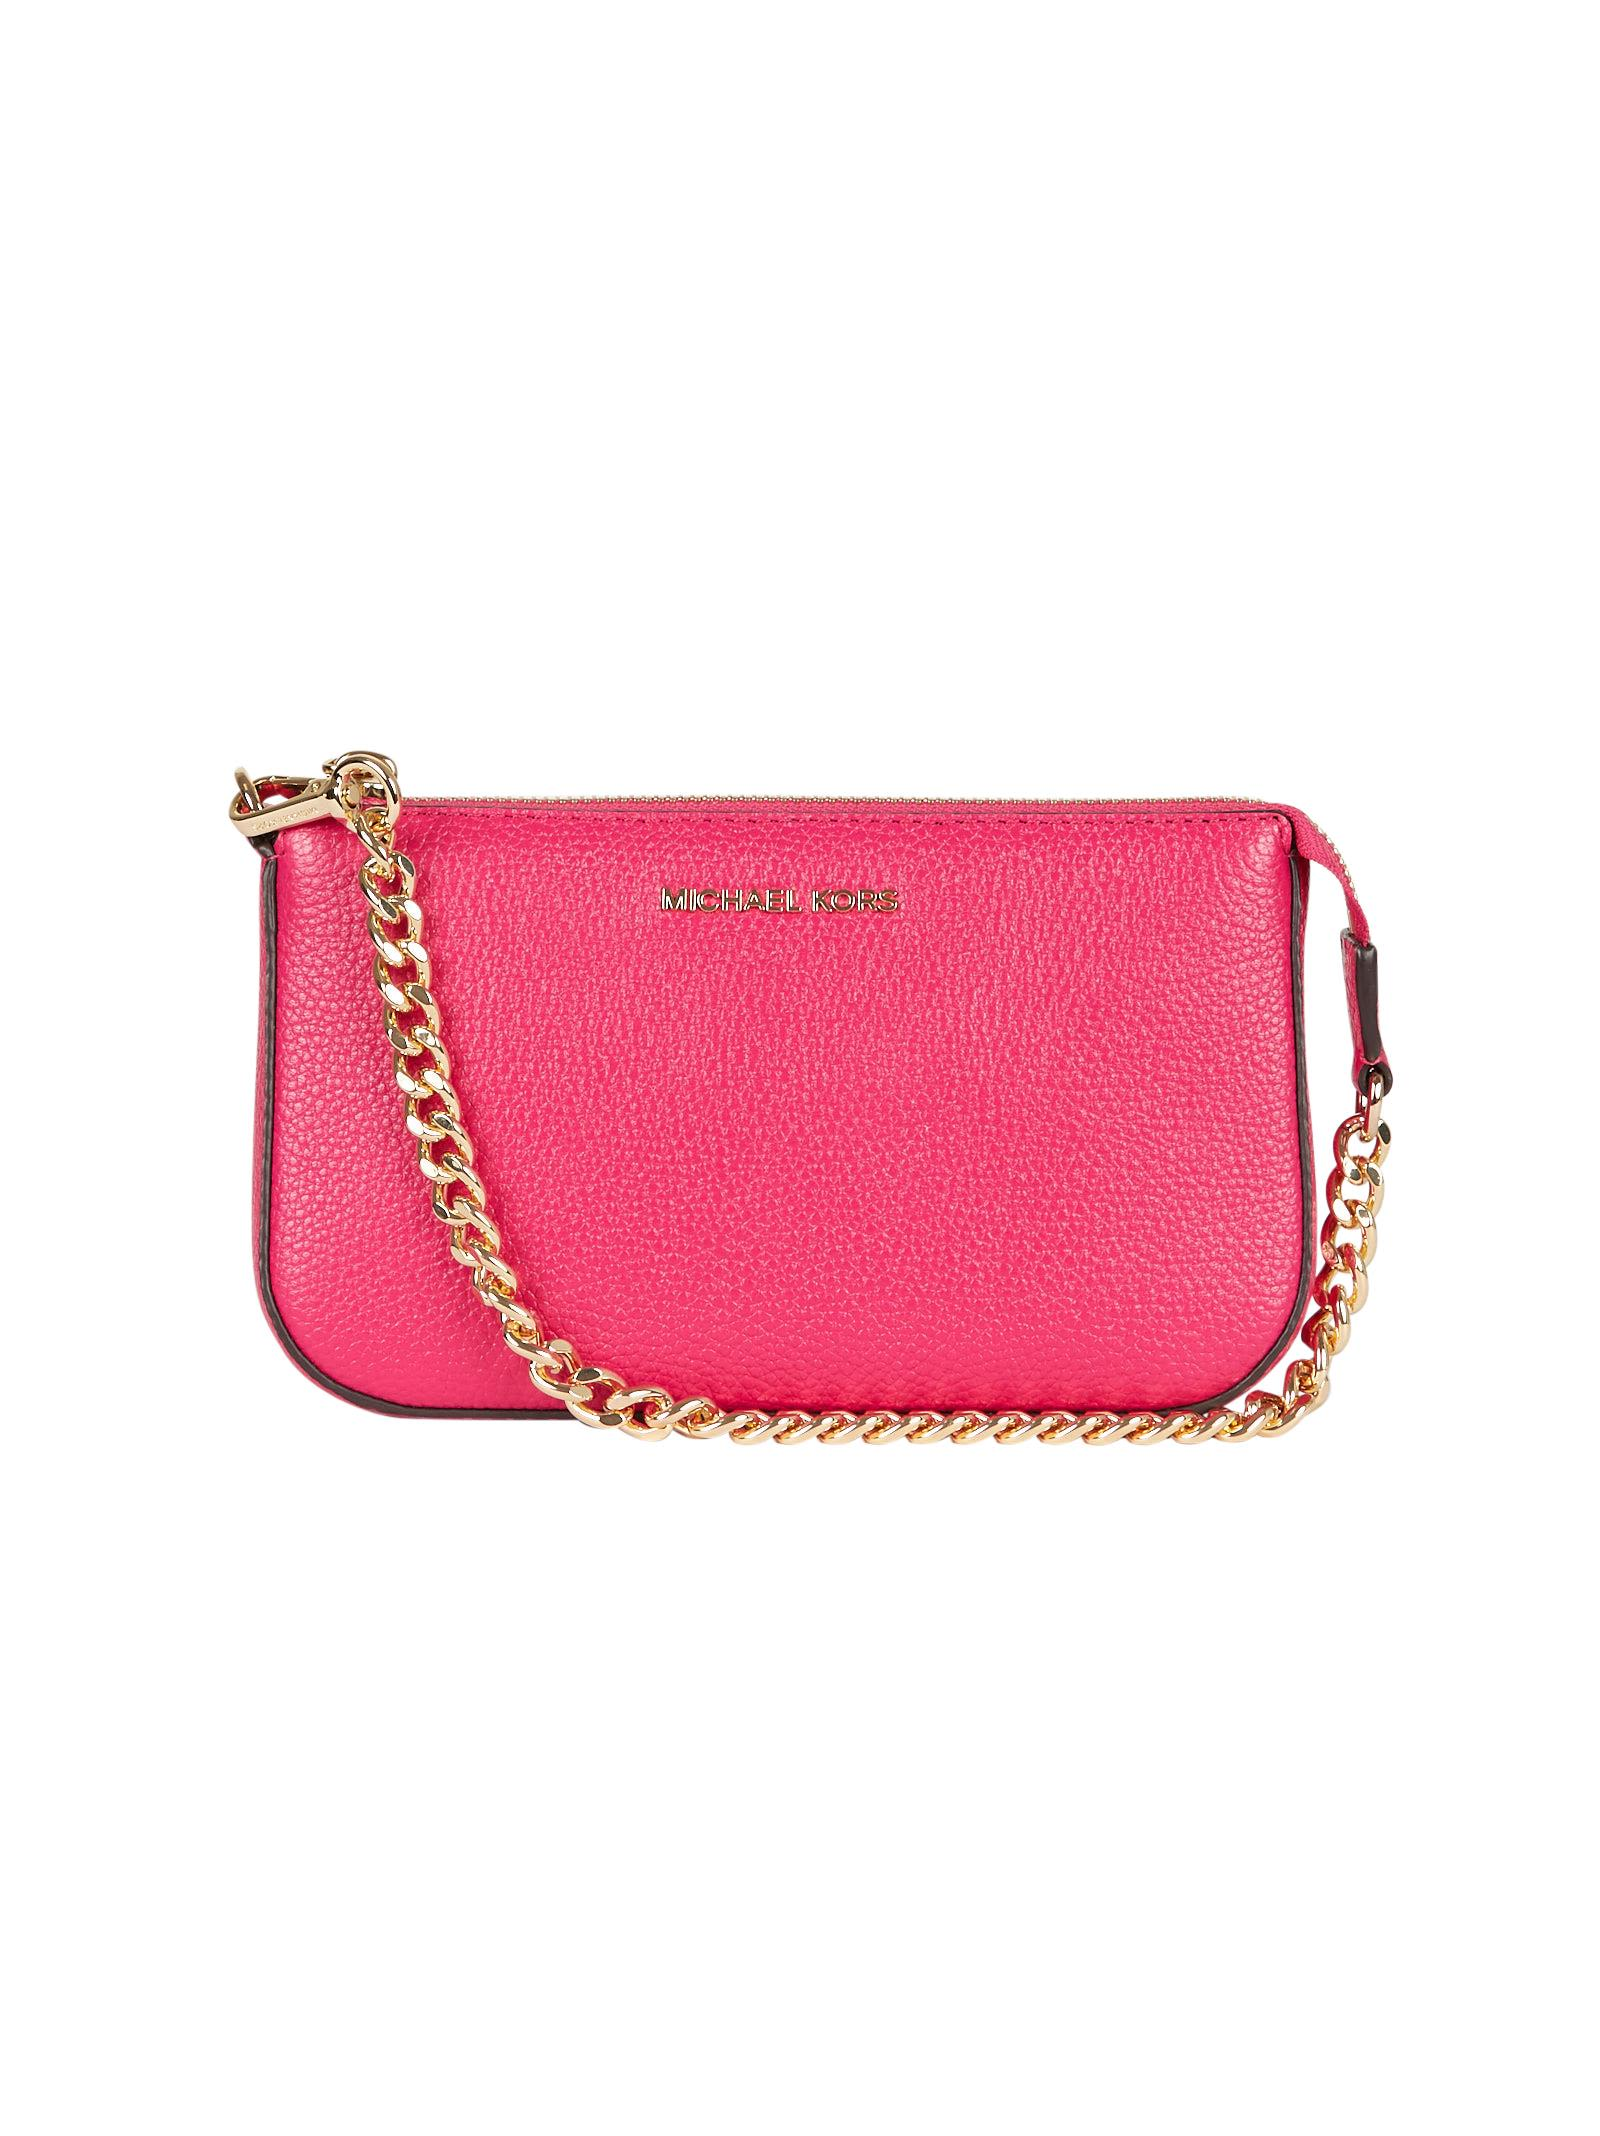 Michael Michael Kors Chain Clutch